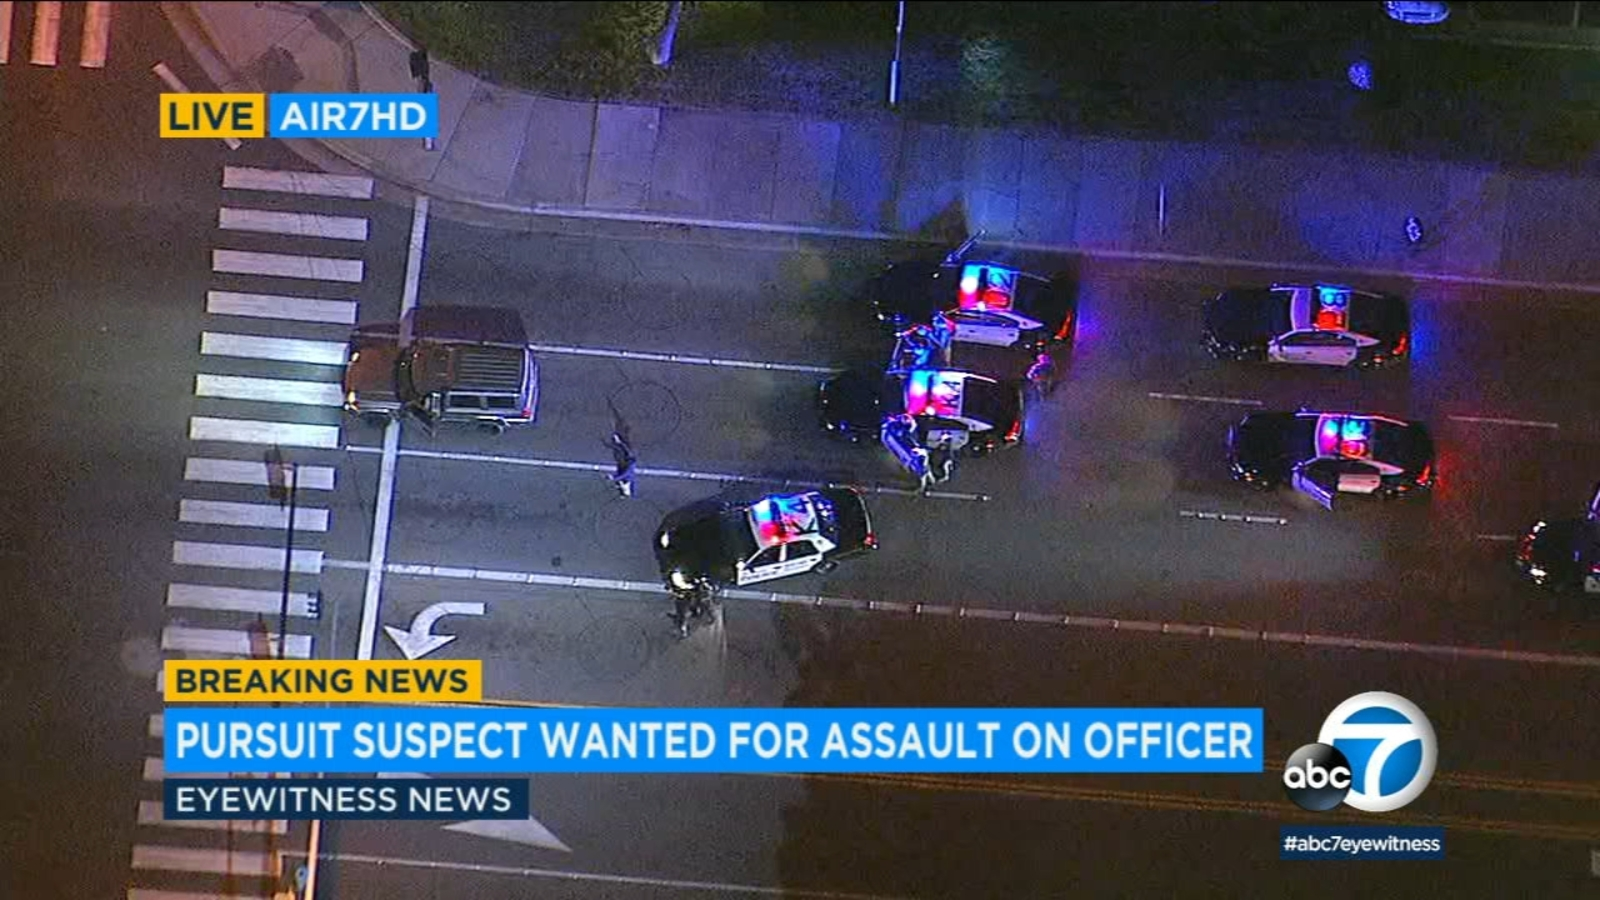 Chase suspect in custody after wild pursuit from IE to OC